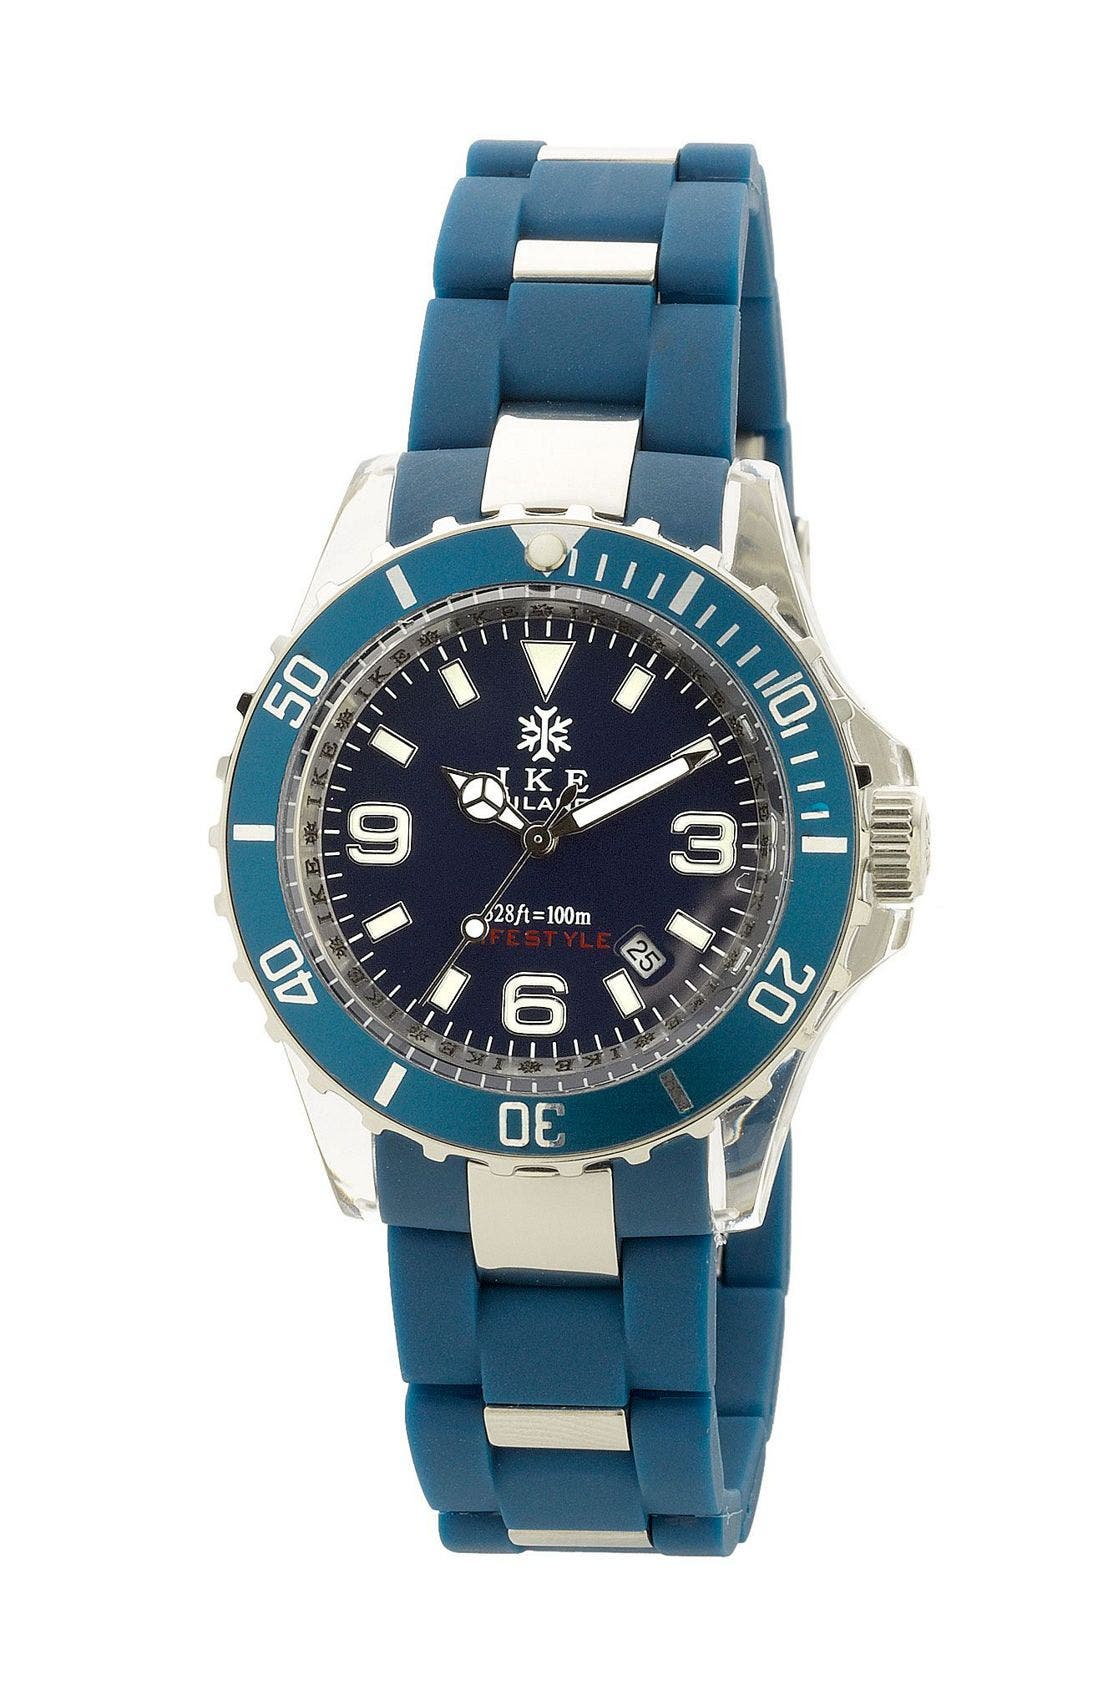 Ike Lifestyle Collection Watch,                             Main thumbnail 1, color,                             415